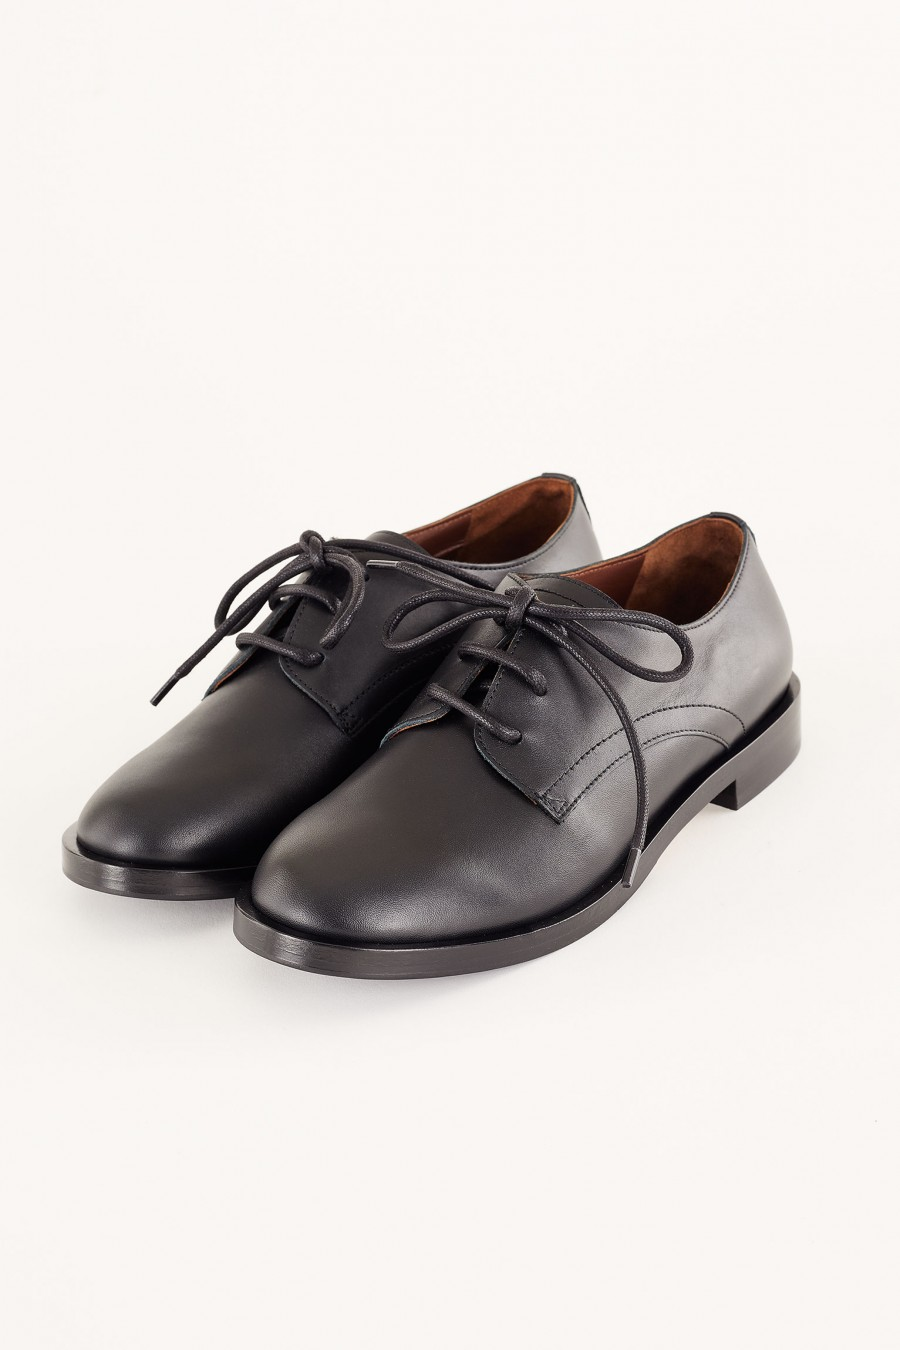 black leather rounded derby shoes